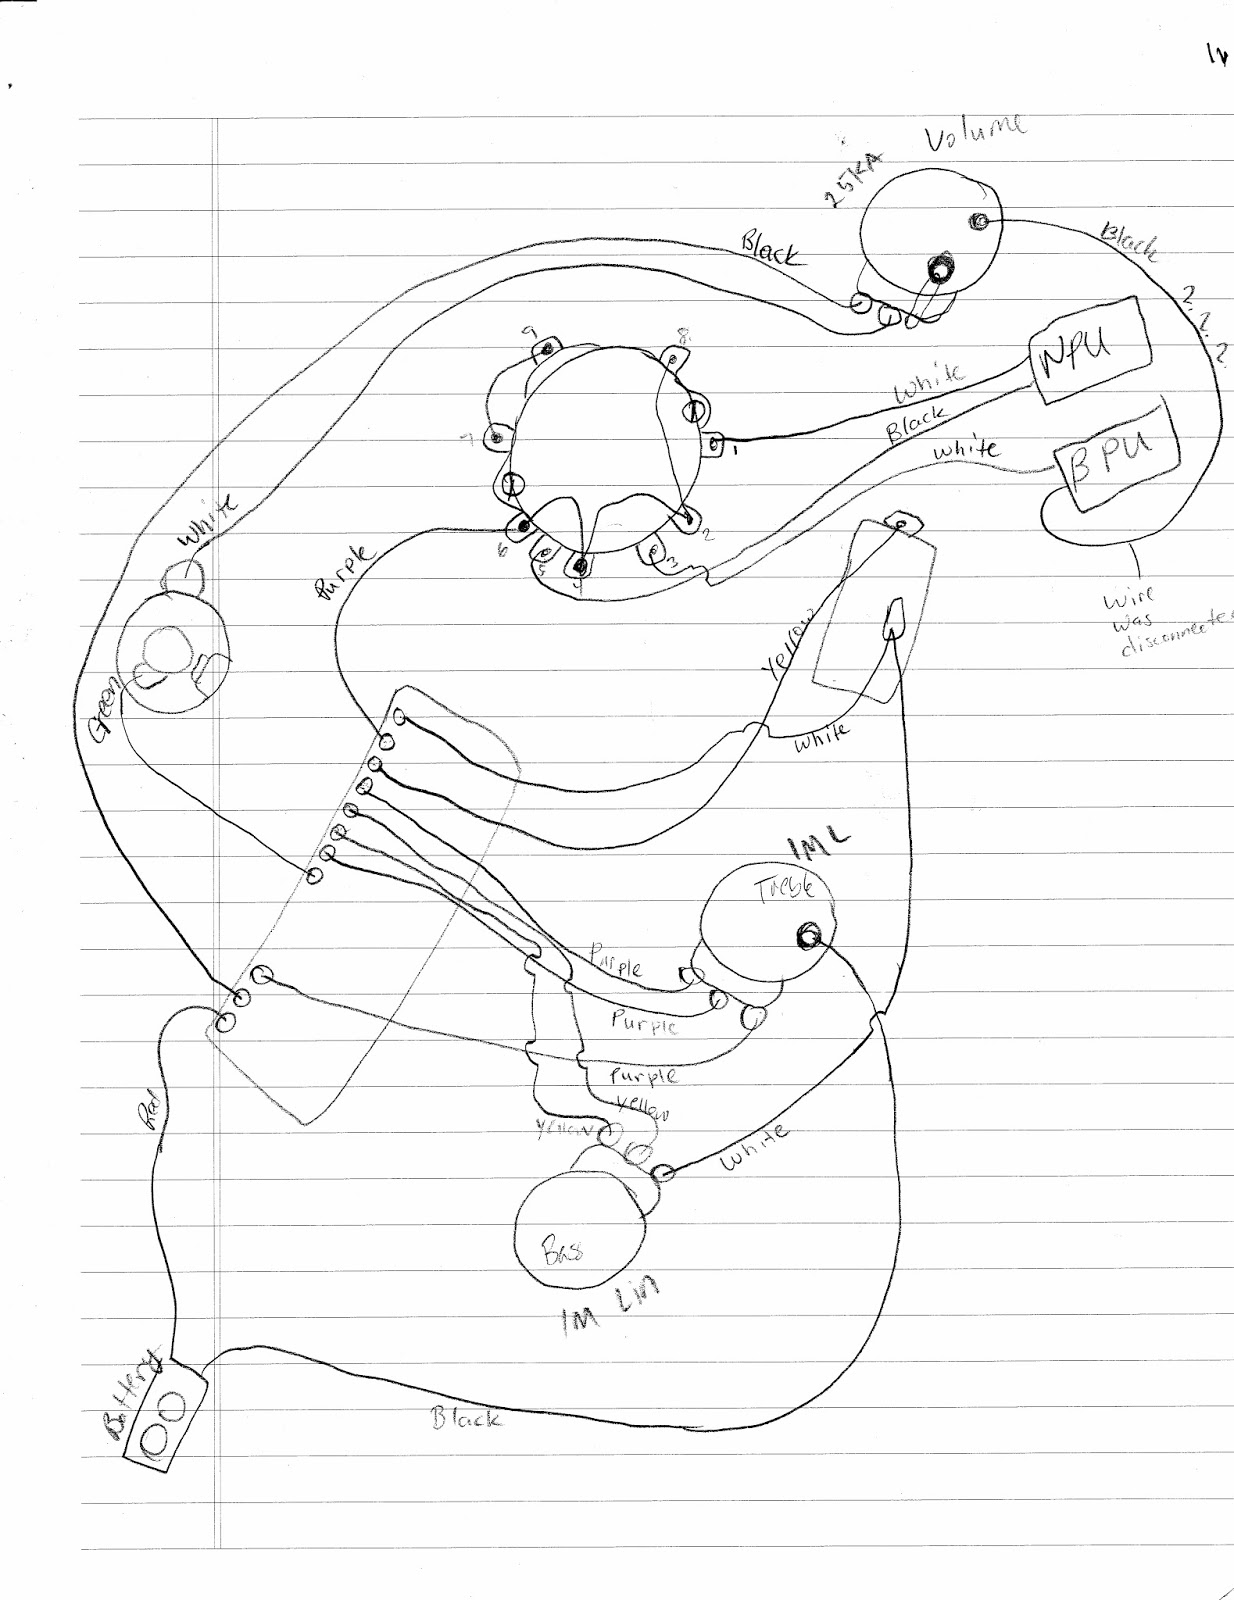 1977 musicman stingray ii wiring diagrams griffin effects blog